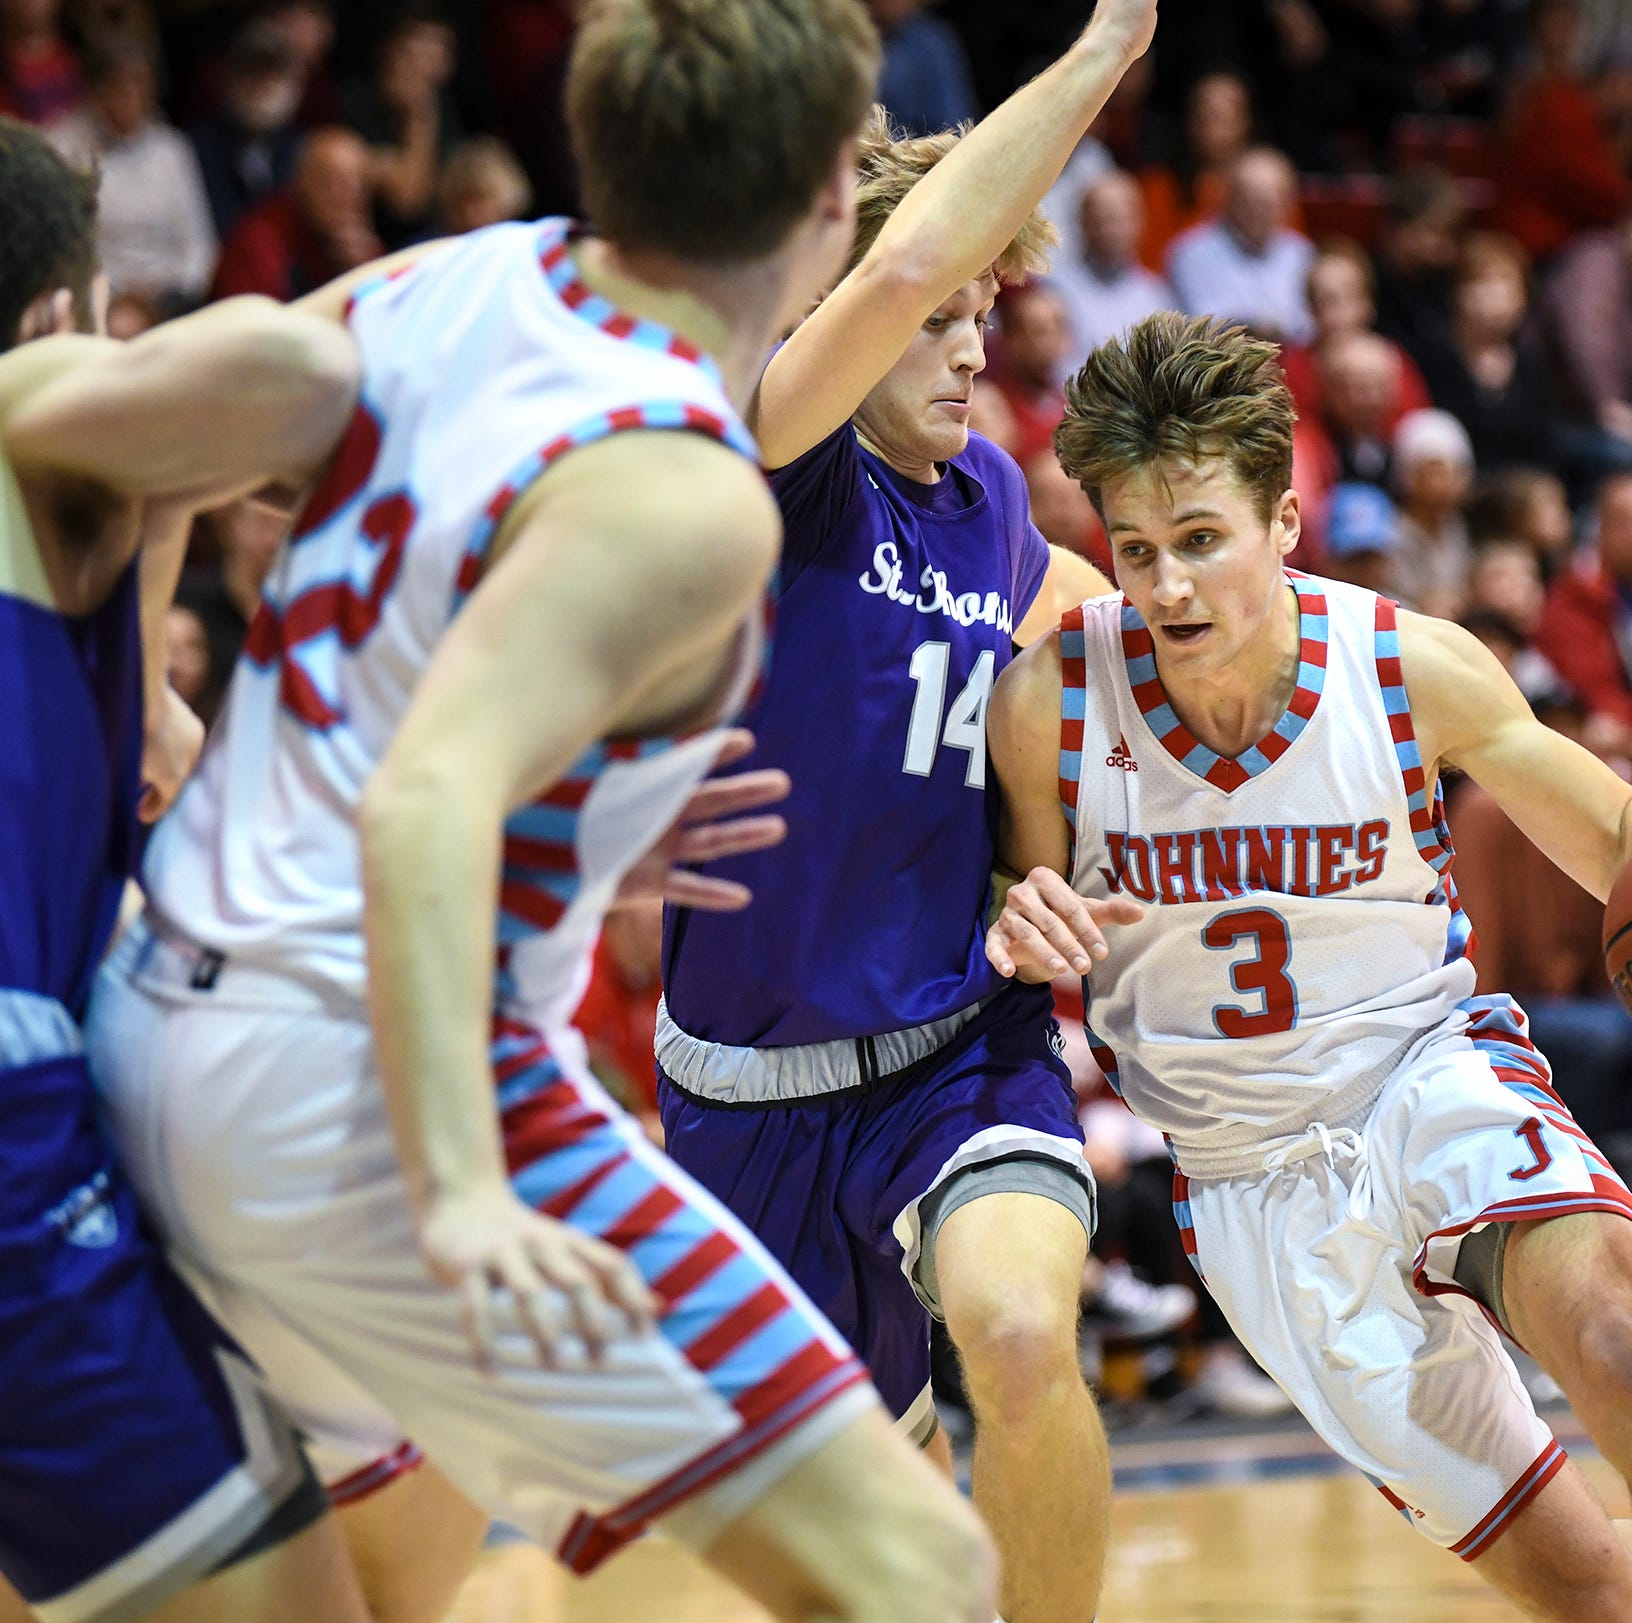 A resounding win: Sophomore post helps SJU beat St. Thomas